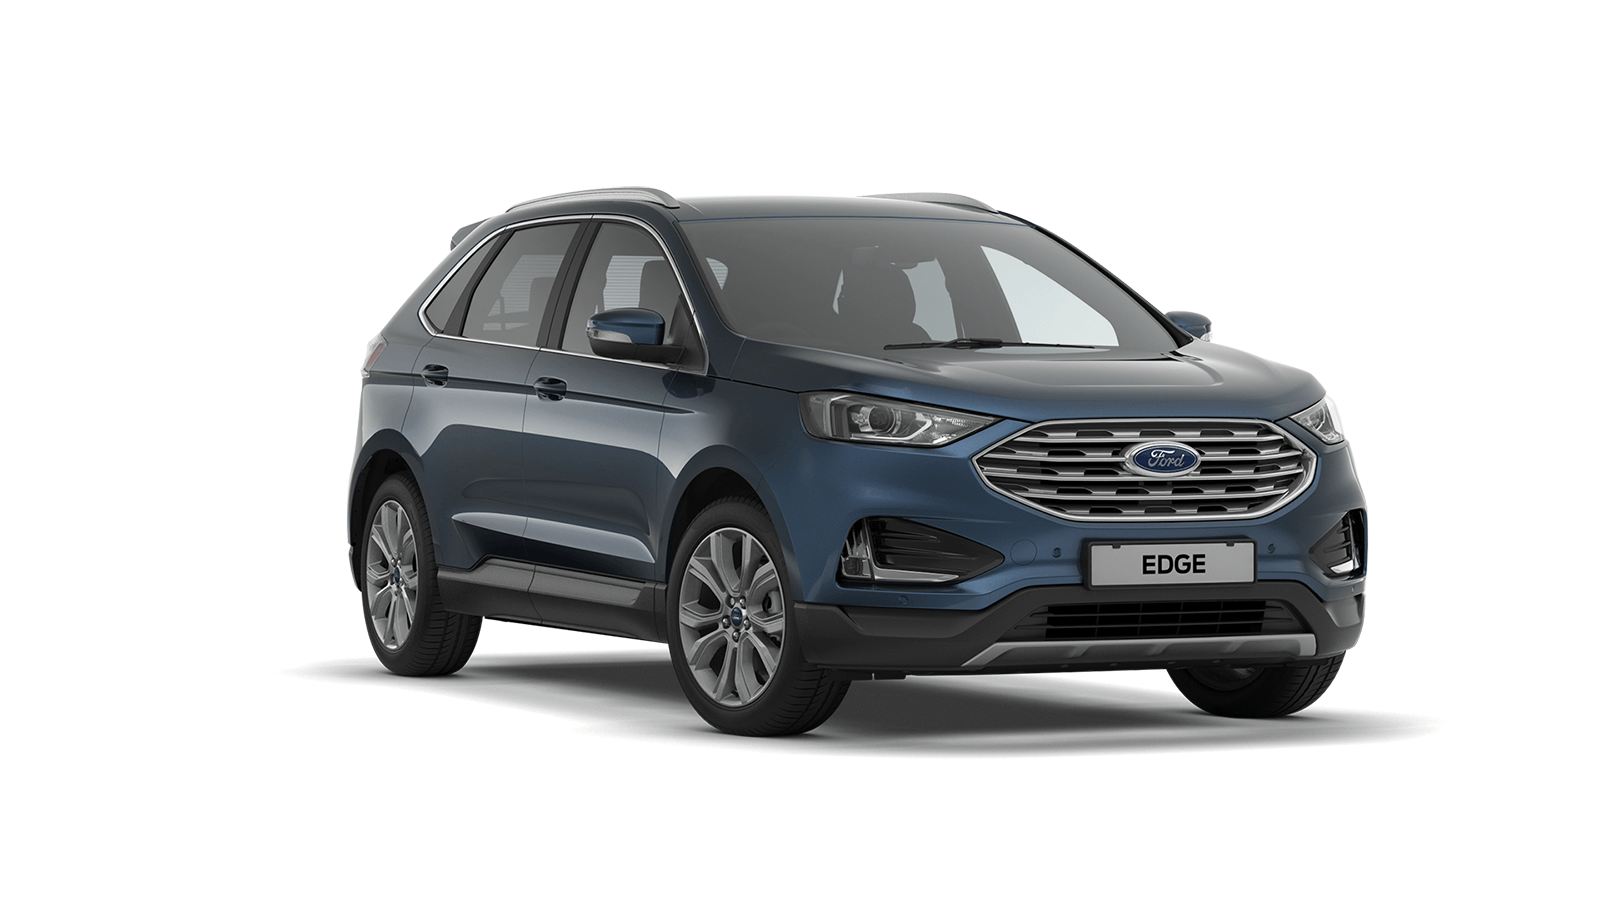 New Ford NEW EDGE at Tremont Garage